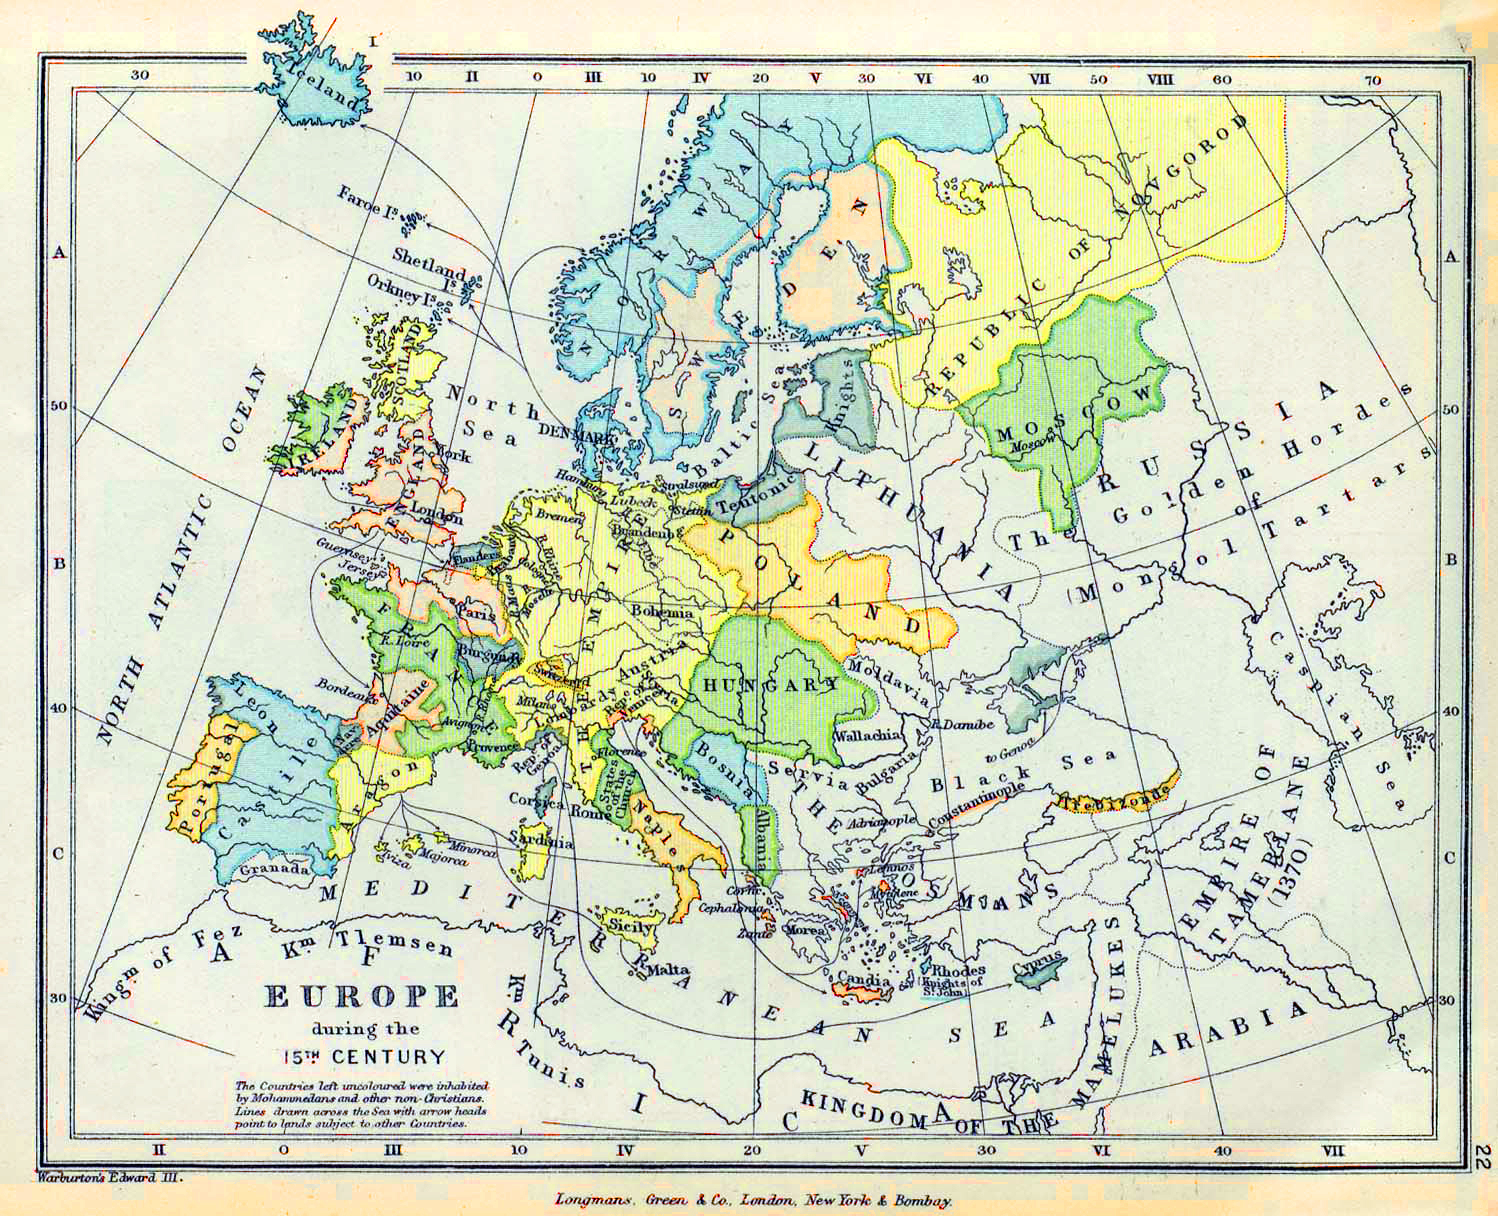 15th Century Map Of Europe.Map Of Europe During The 15th Century